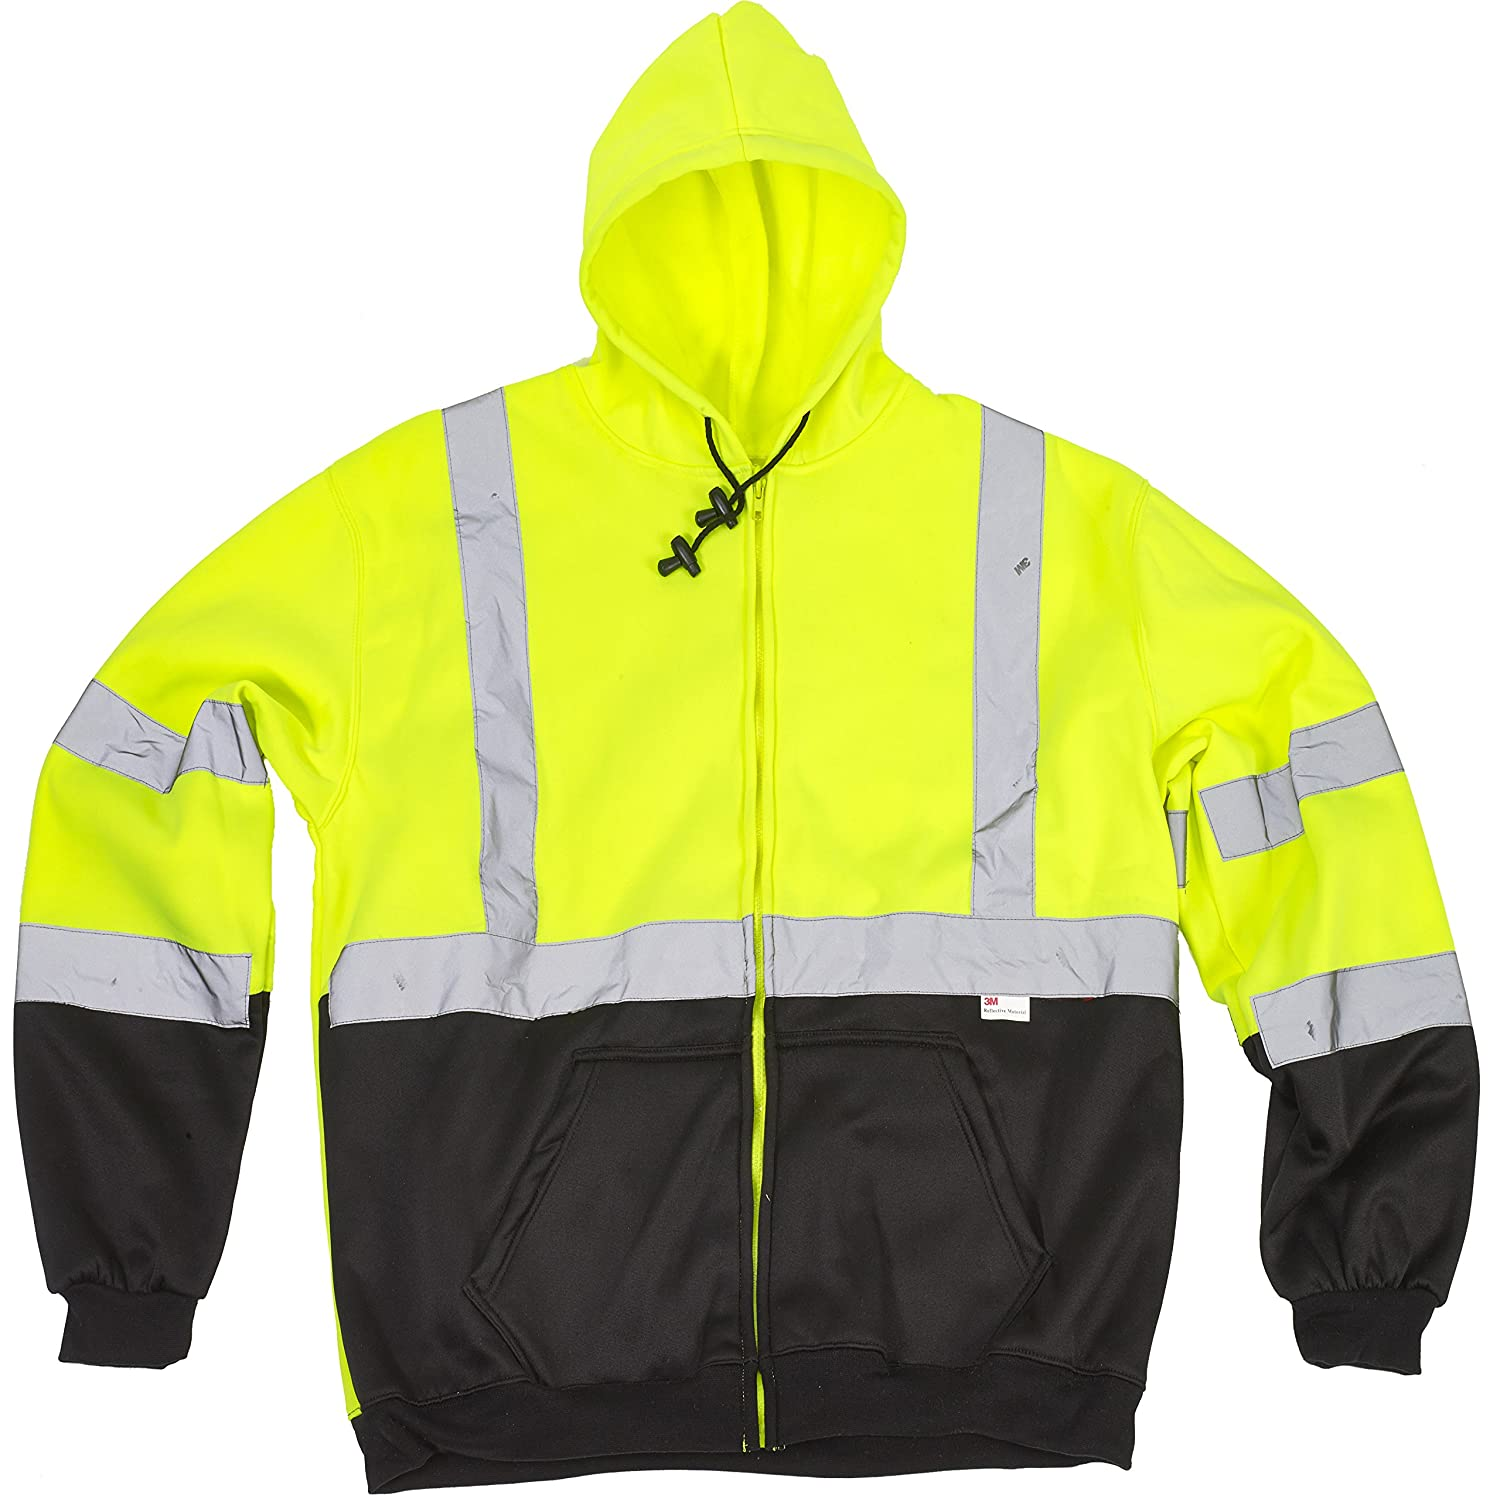 MIVIS SAFETY APPAREL 16385-138-3 Cheap mail order shopping Sweatshirt Hi-Visibility Hooded High quality